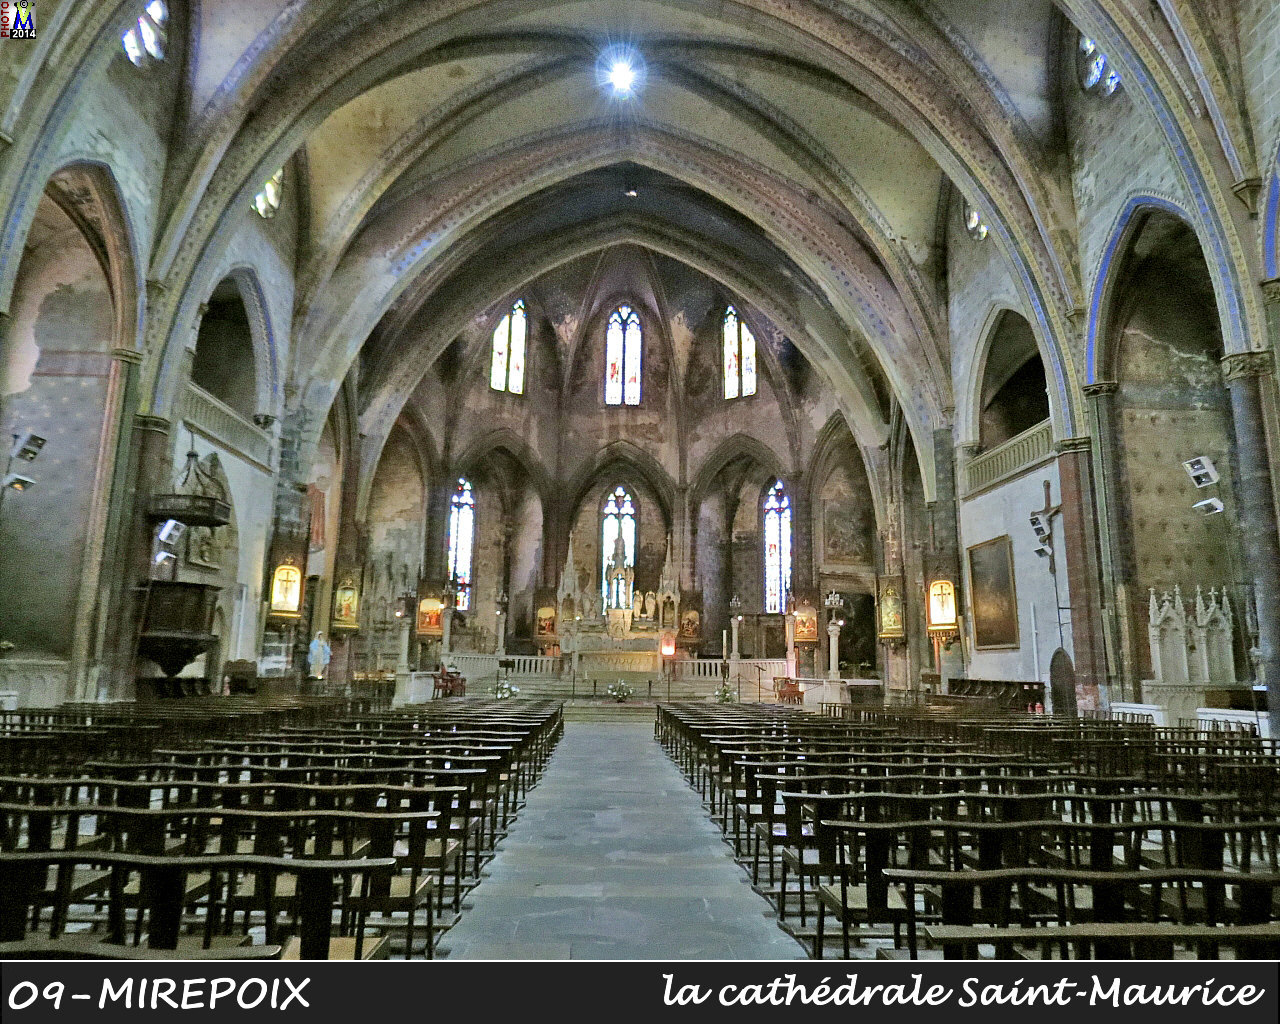 09MIREPOIX_cathedrale_200.jpg